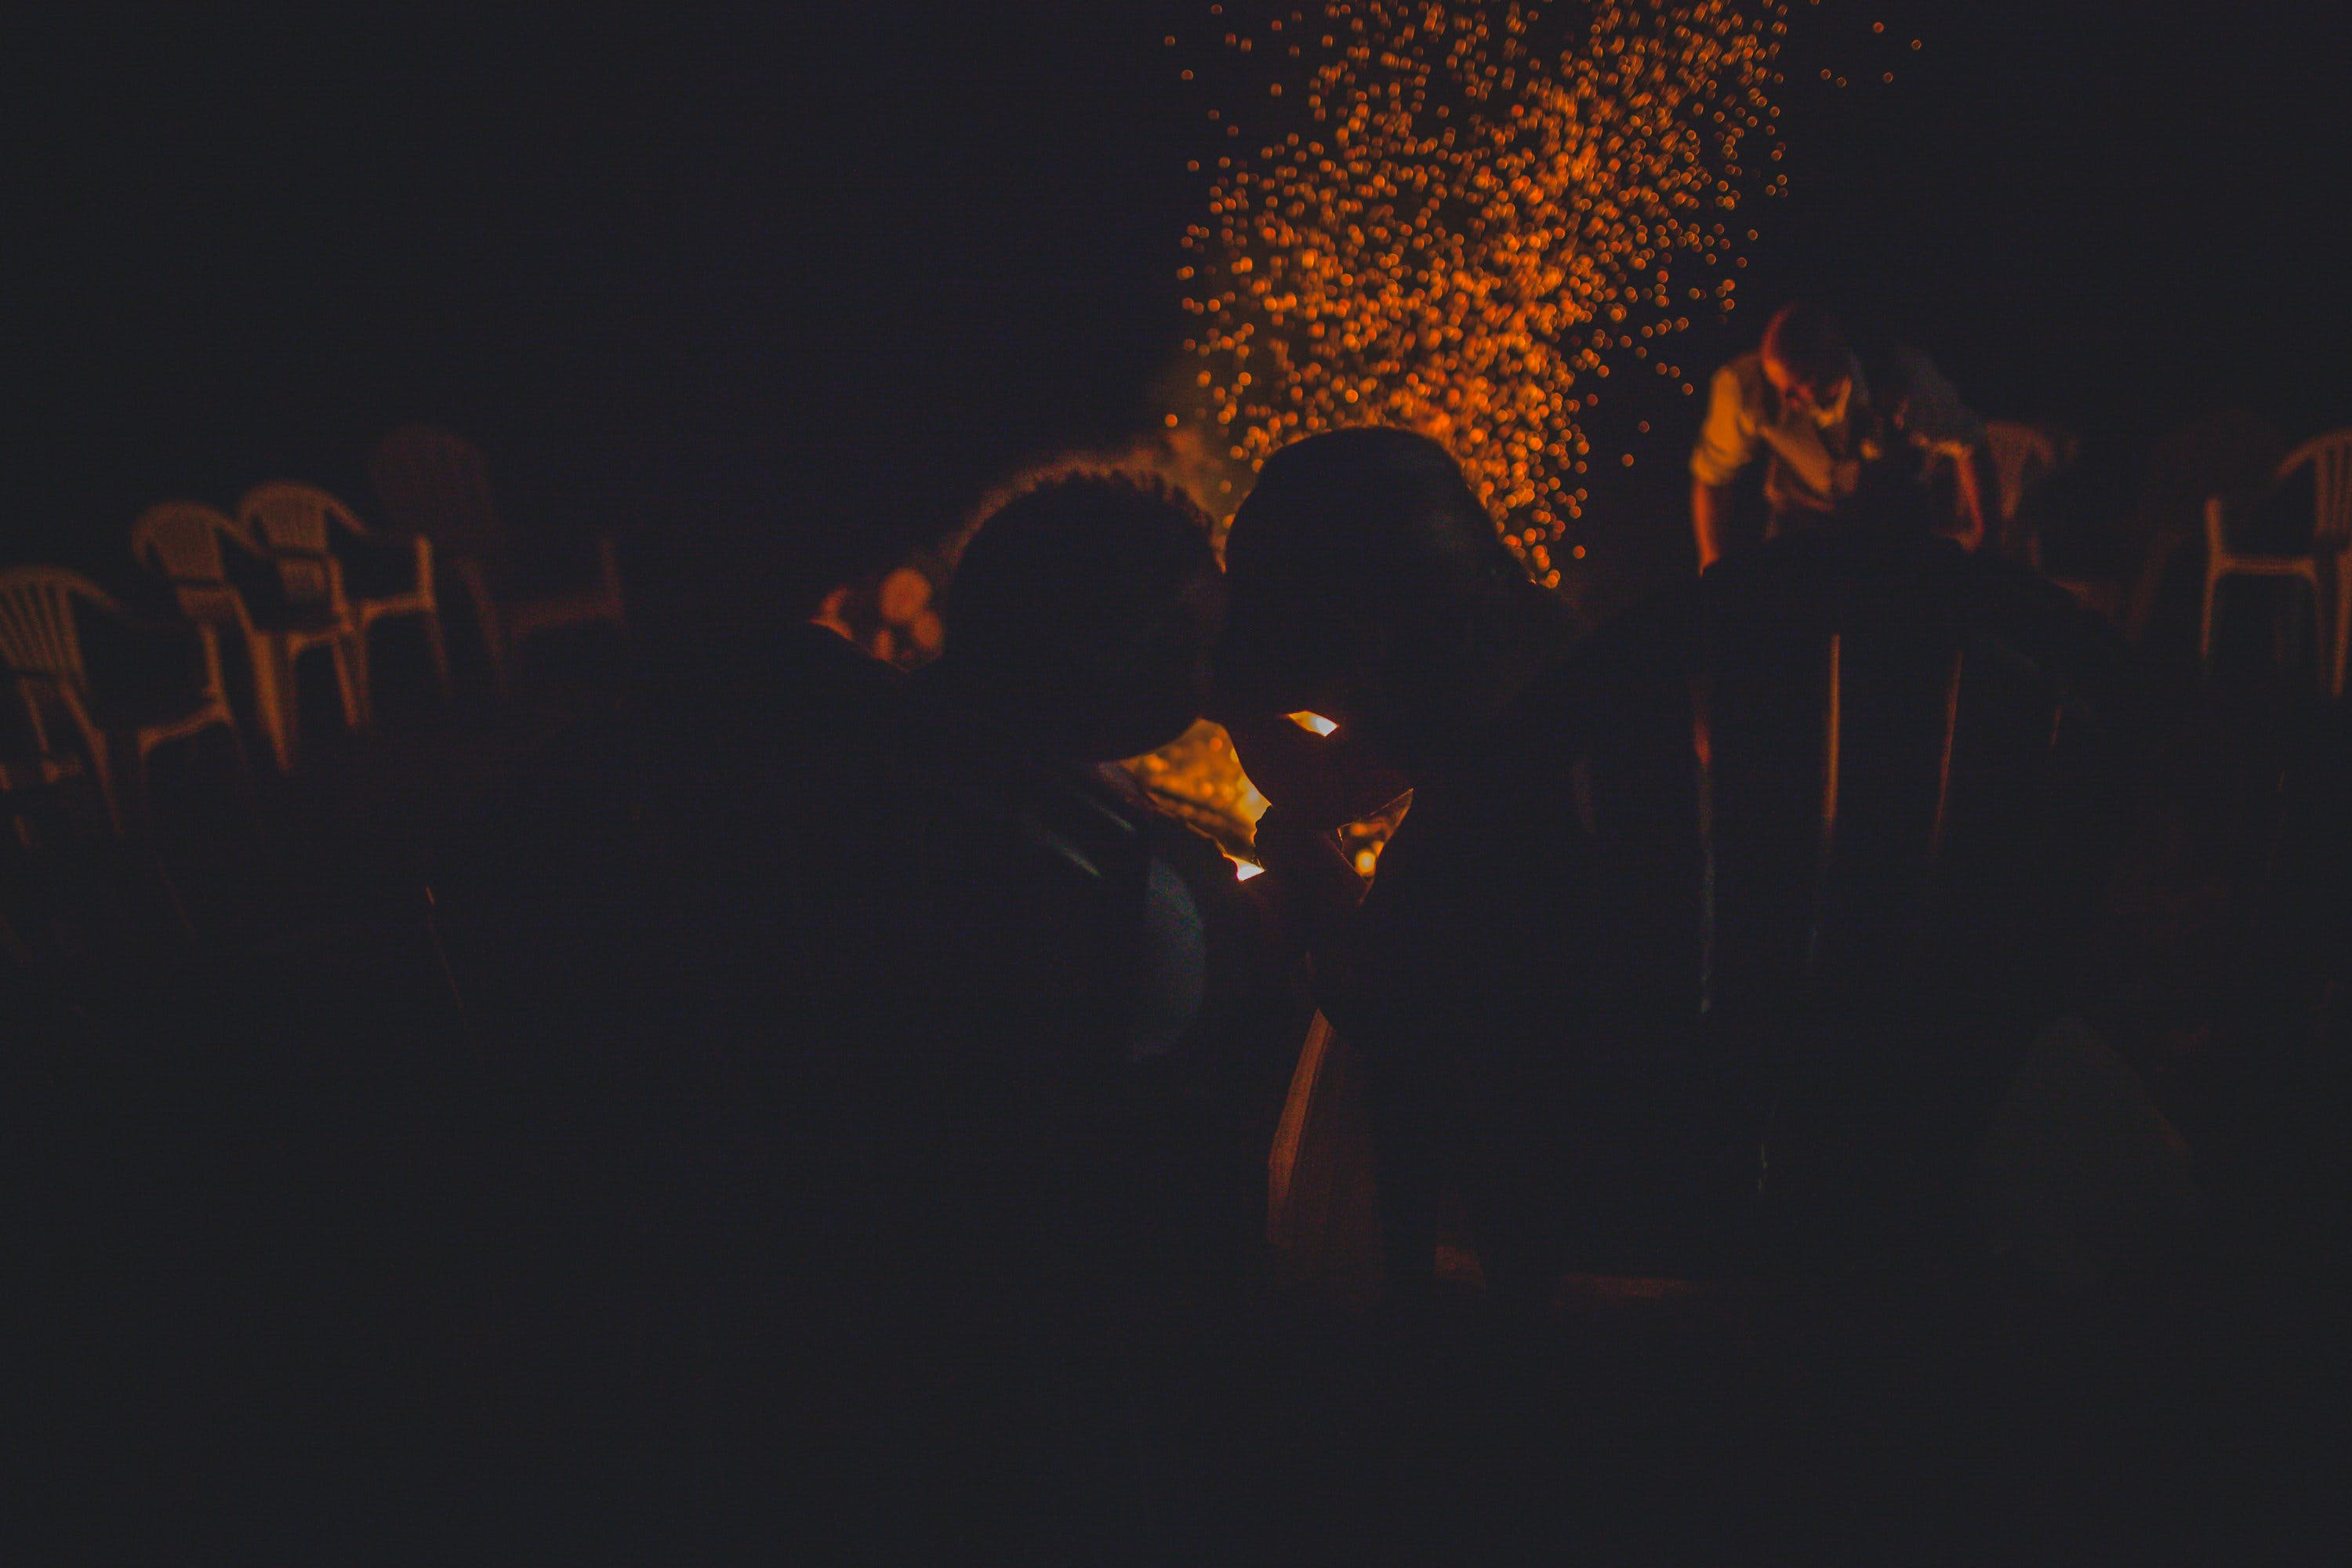 Free stock photo of love, night, kissing, fire